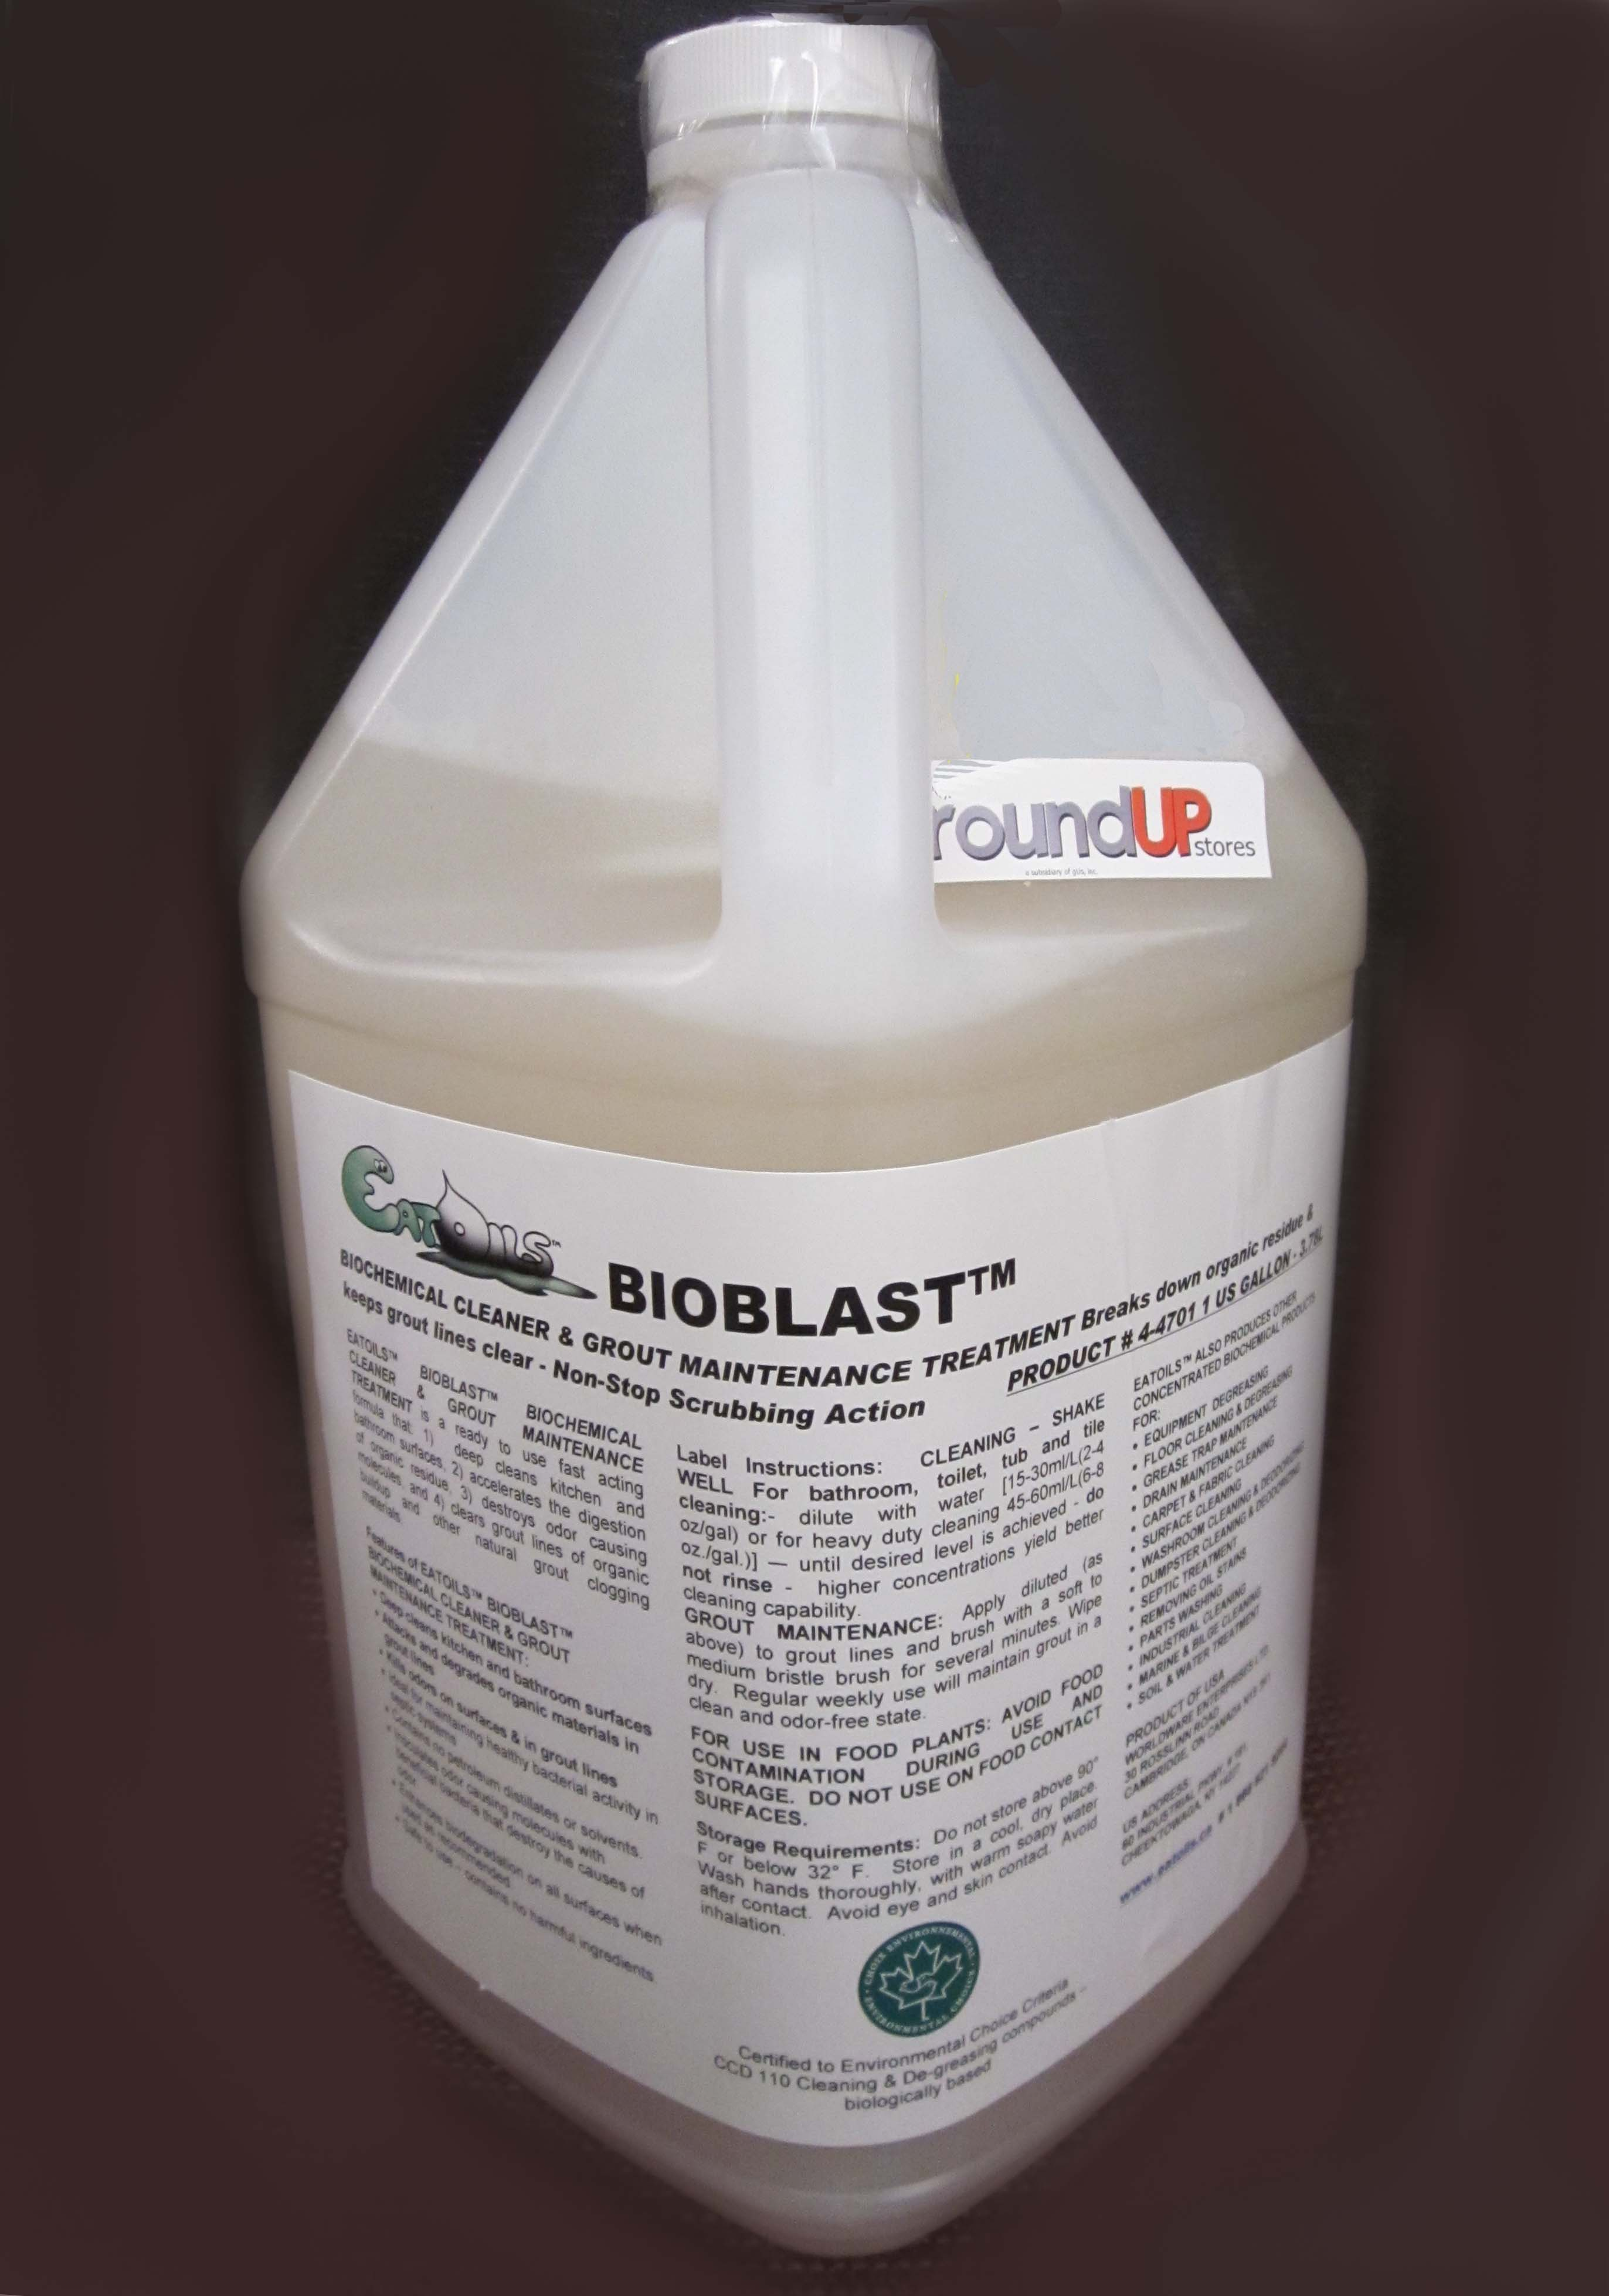 Image logo for BIOBLAST Biochemical Cleaner and Drain Maintenance Treatment - EatOILS BIOBLAST Cleaner